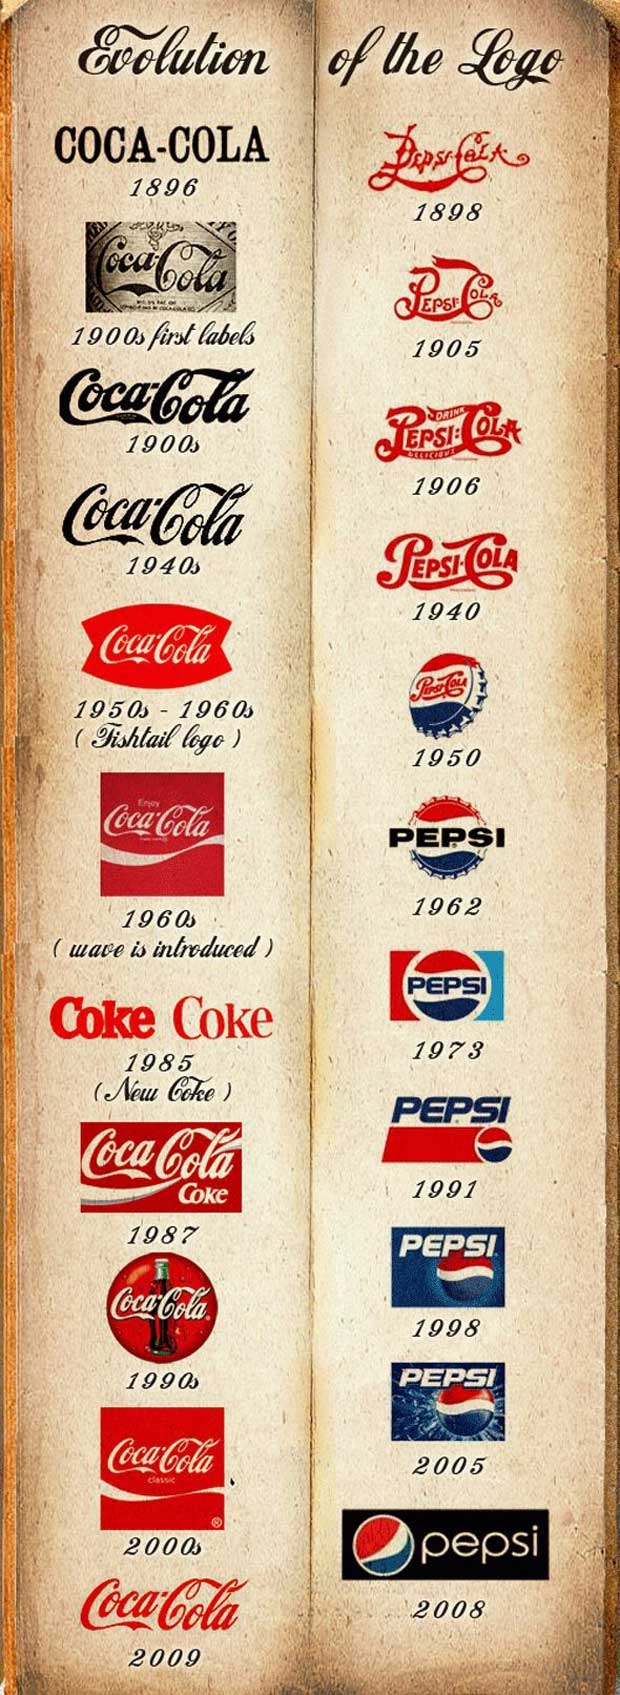 Creating branding ideas for brand logo of Coca-Cola and Pepsi